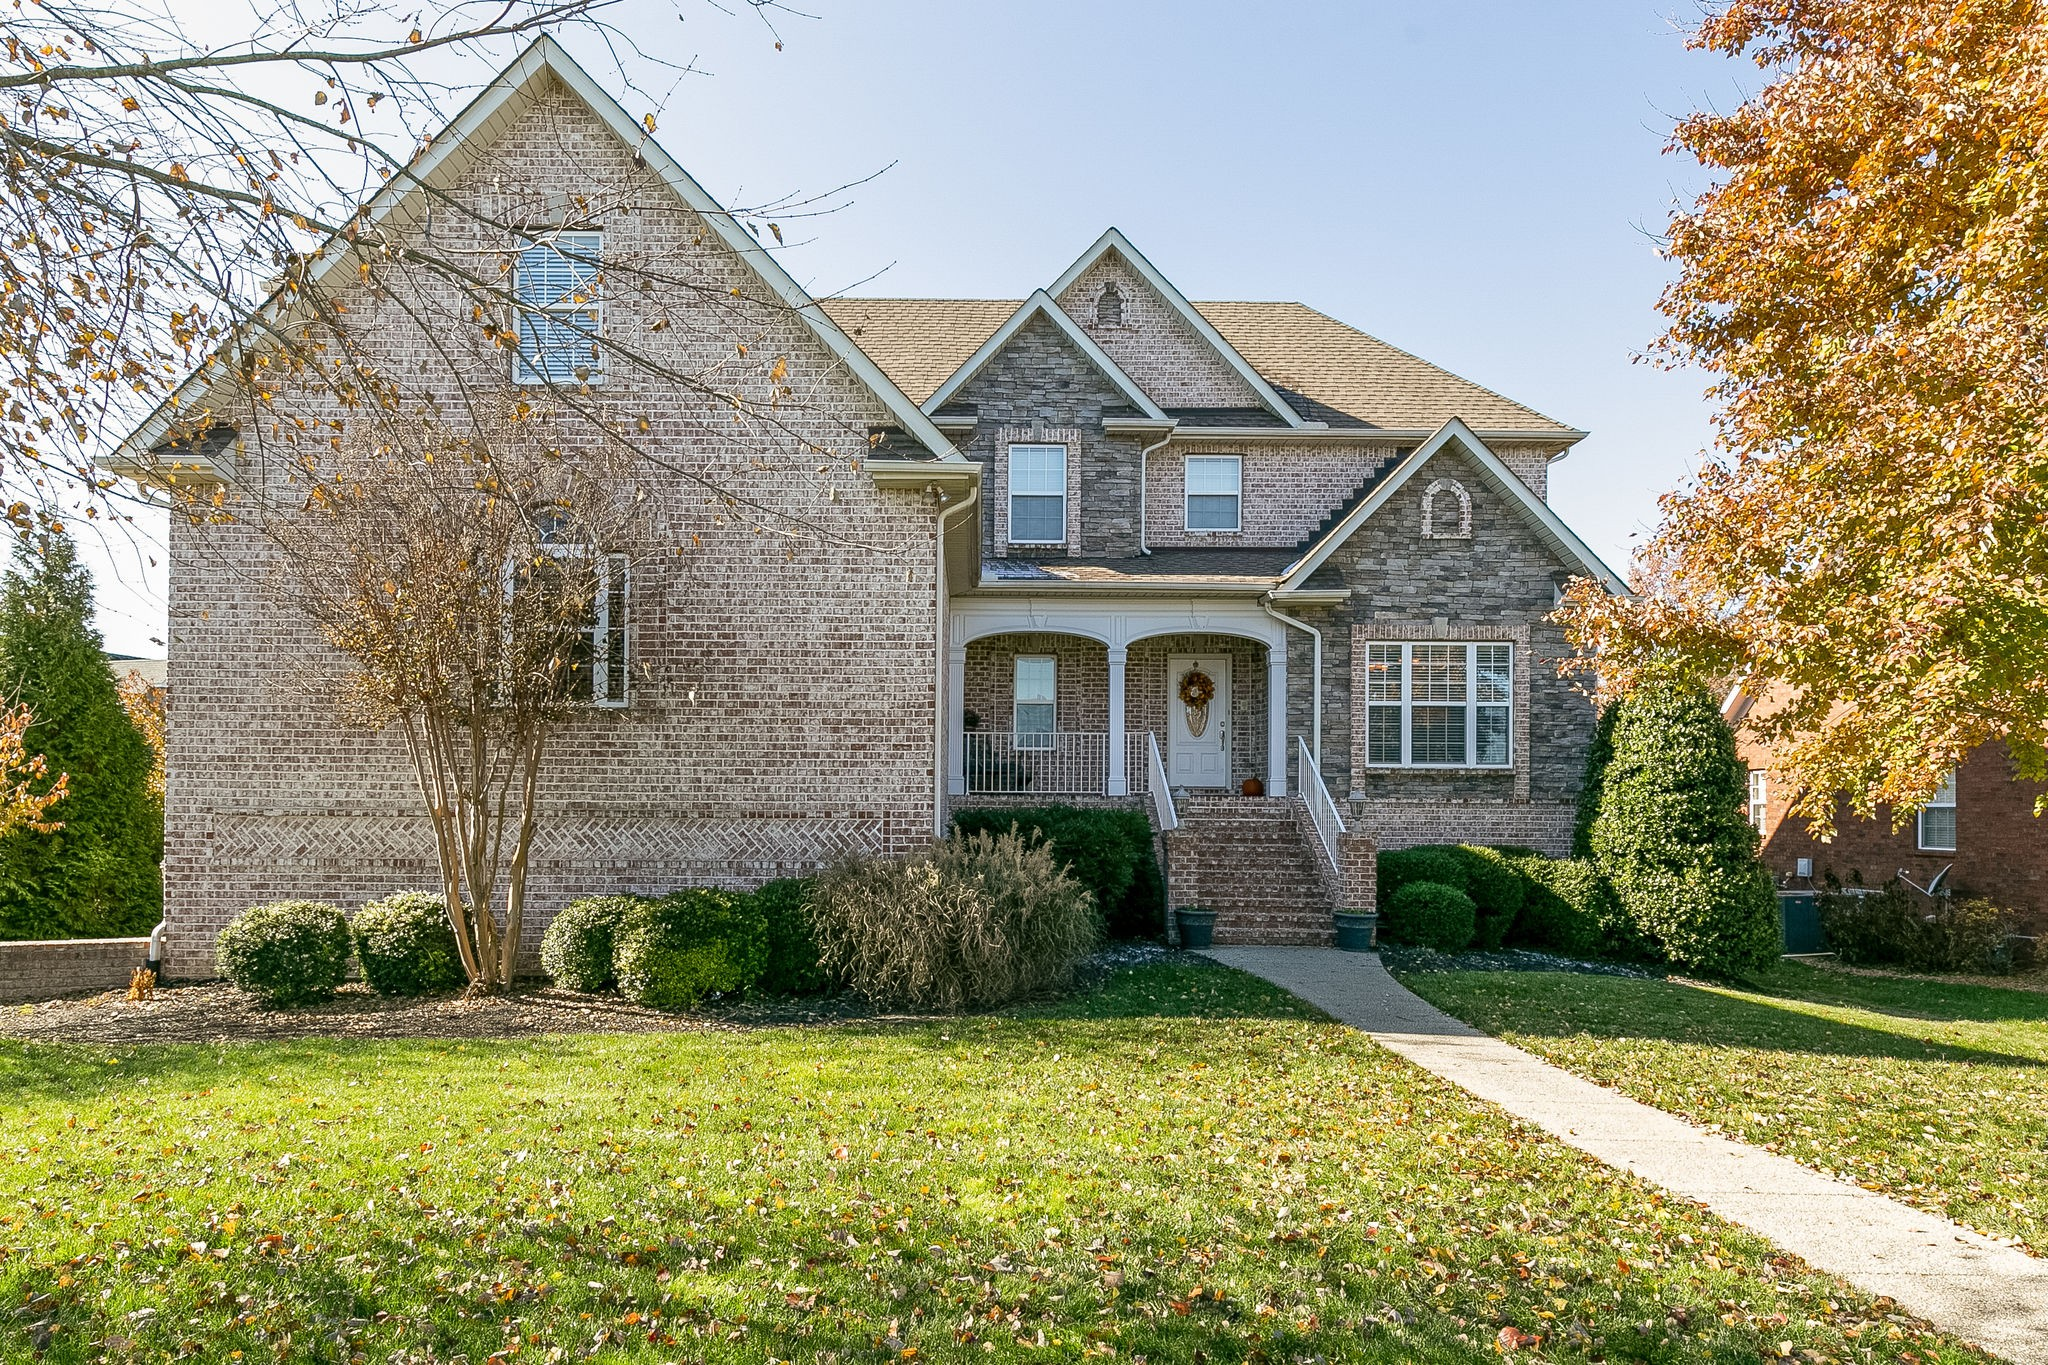 1303 Round Hill Ln, Spring Hill, TN 37174 - Spring Hill, TN real estate listing